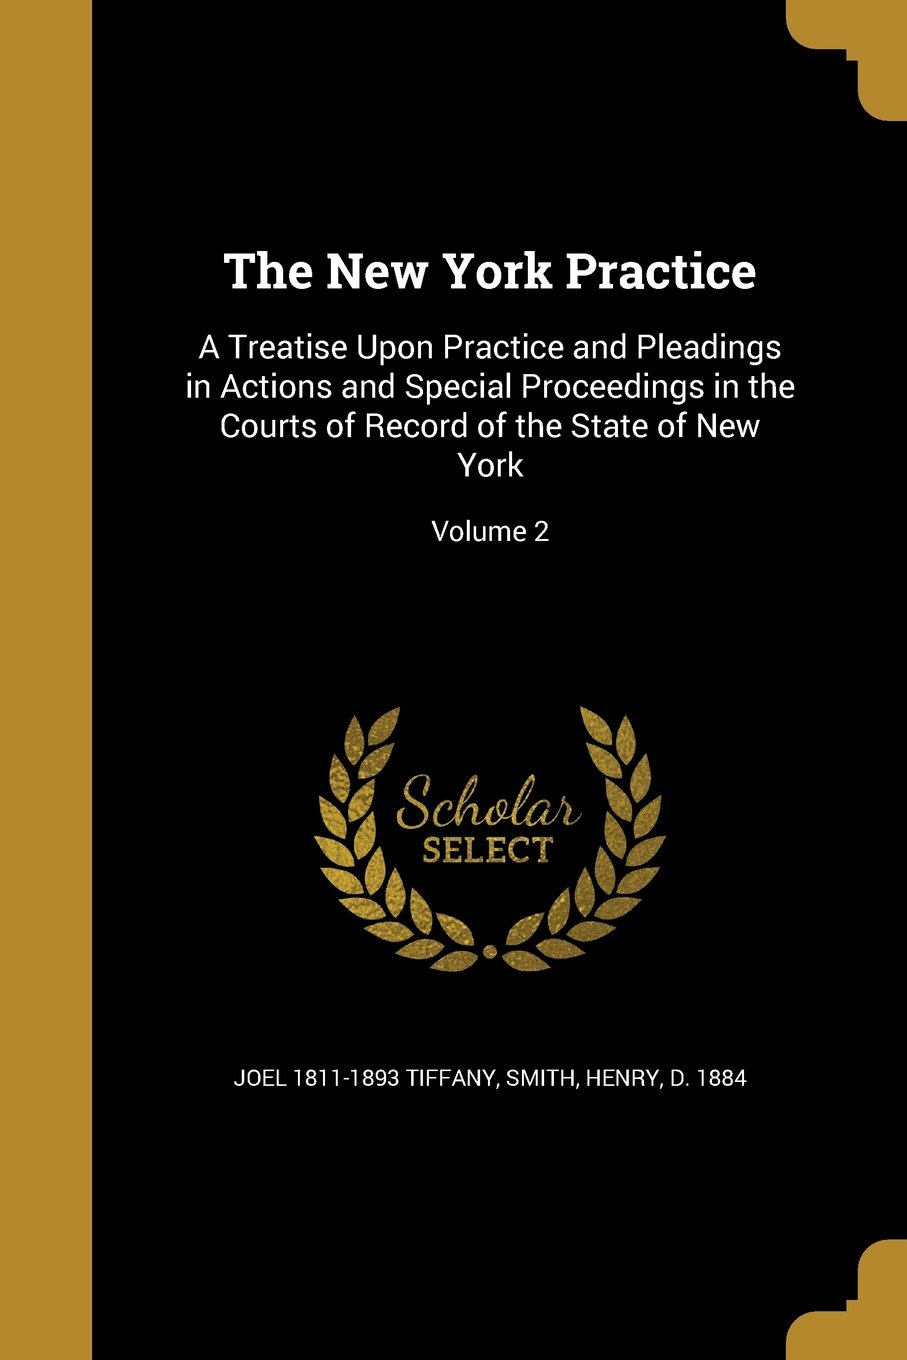 The New York Practice: A Treatise Upon Practice and Pleadings in Actions and Special Proceedings in the Courts of Record of the State of New York; Volume 2 pdf